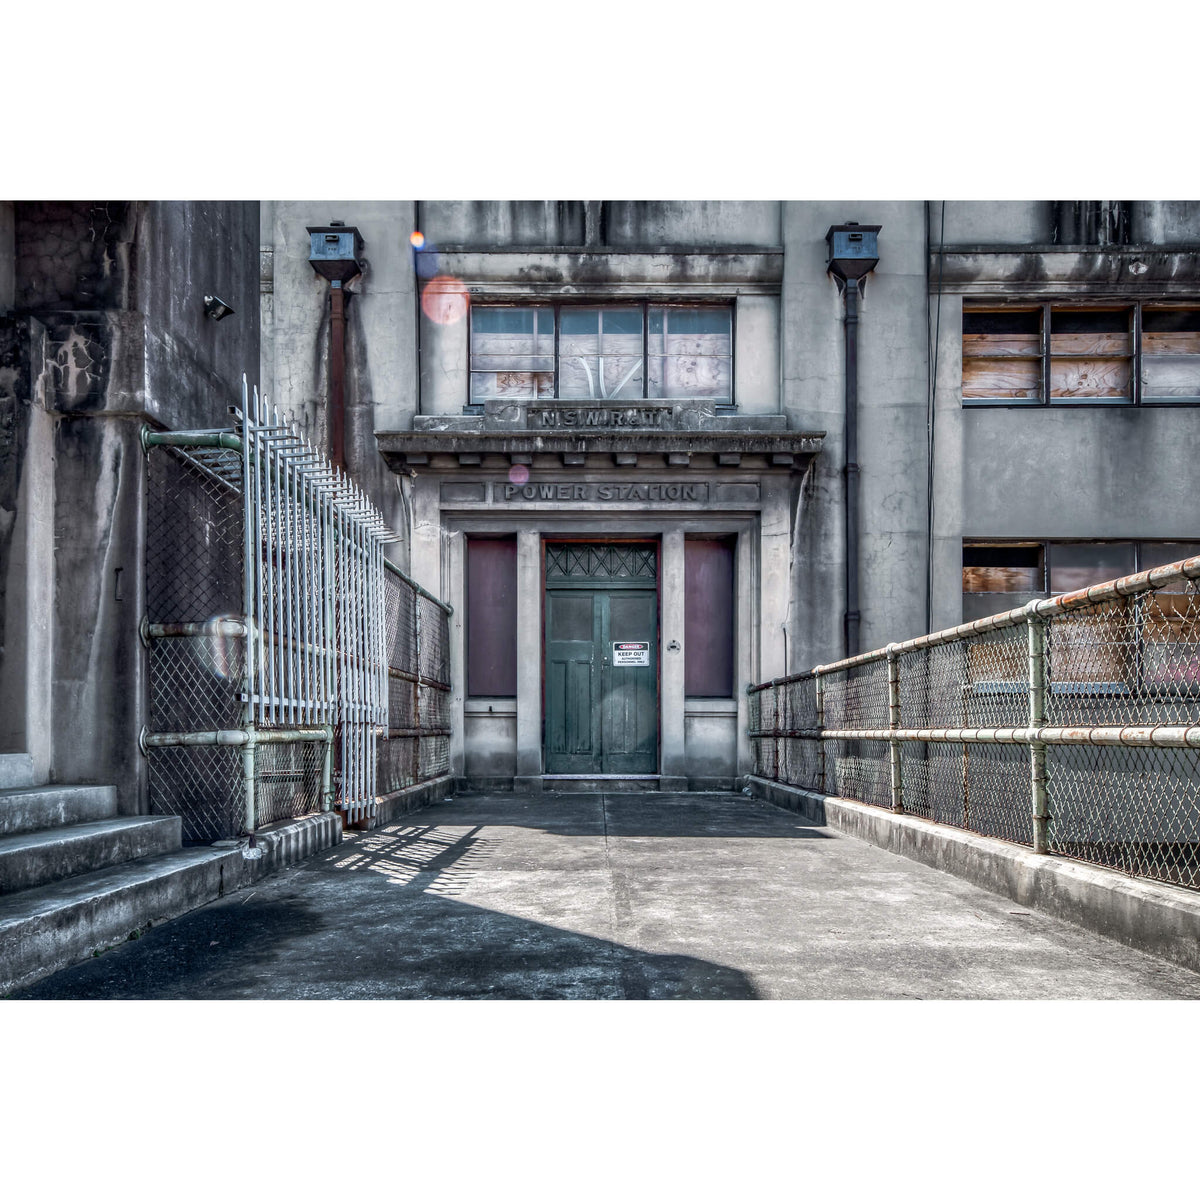 Administration Entrance | White Bay Power Station Fine Art Print - Lost Collective Shop